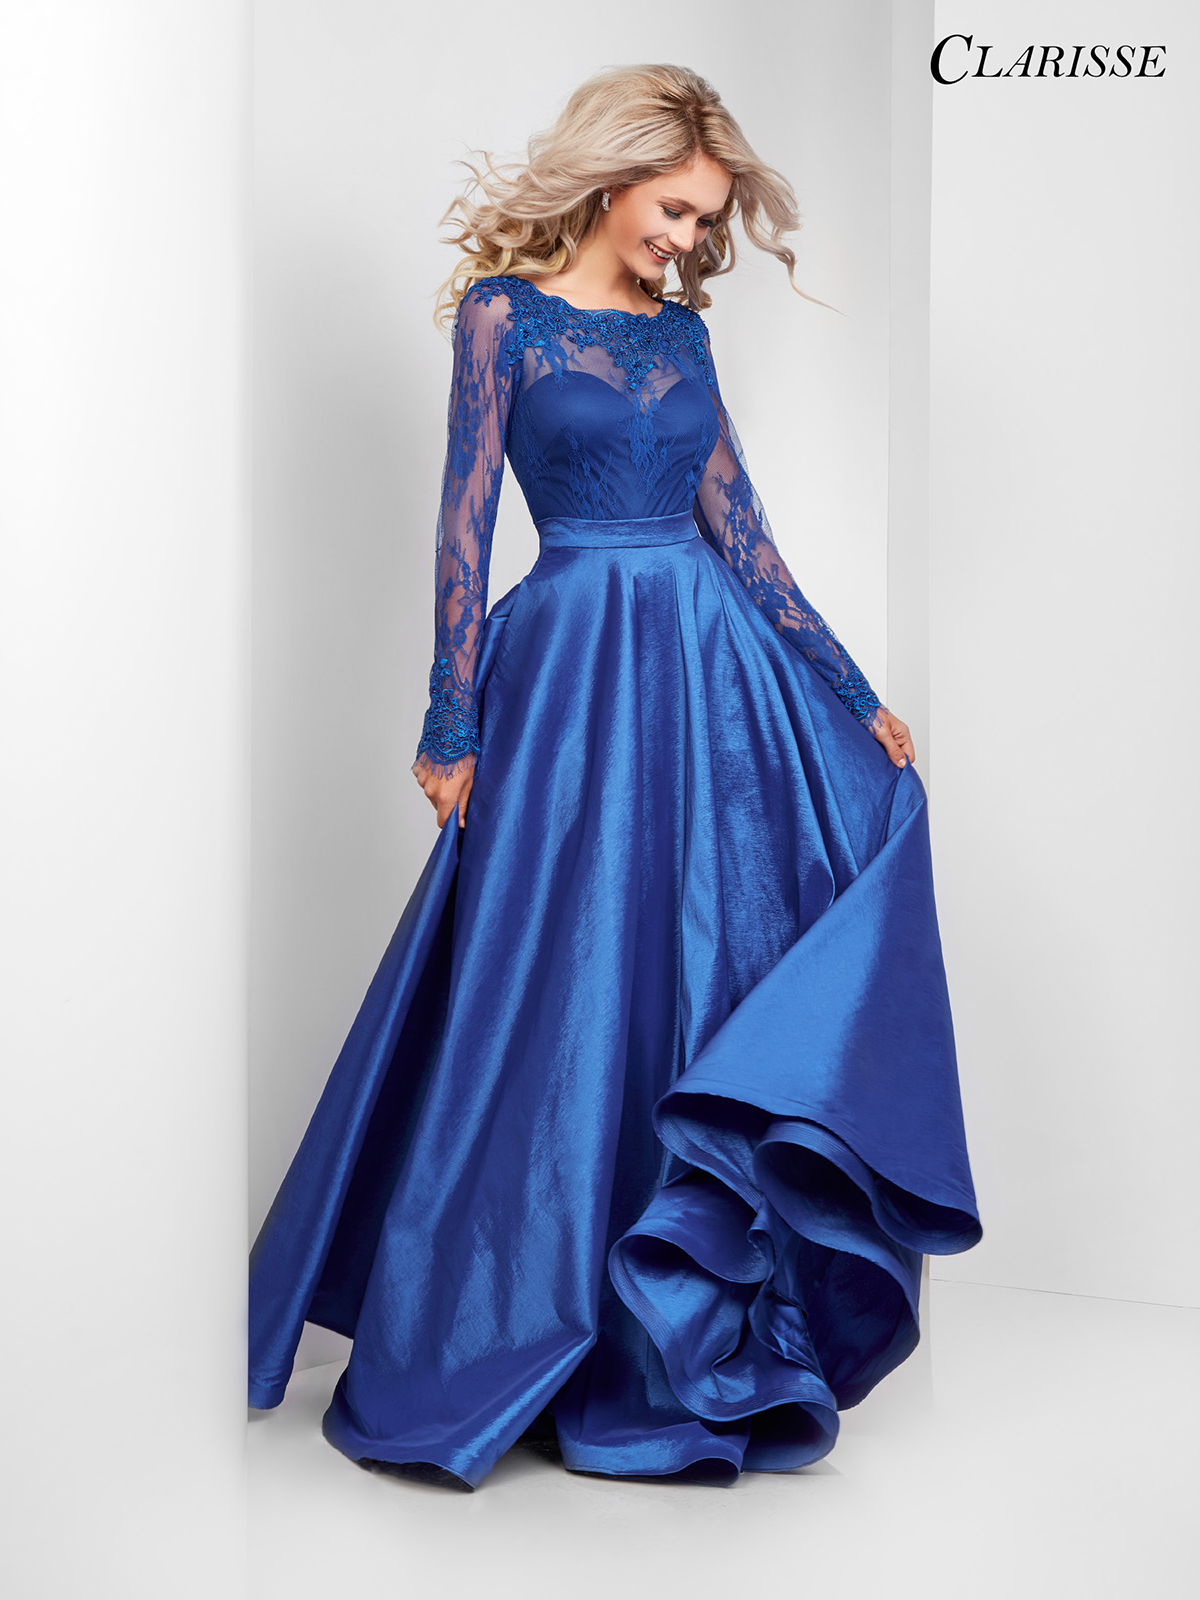 2018 Prom Dress Clarisse 3487 | Promgirl.net